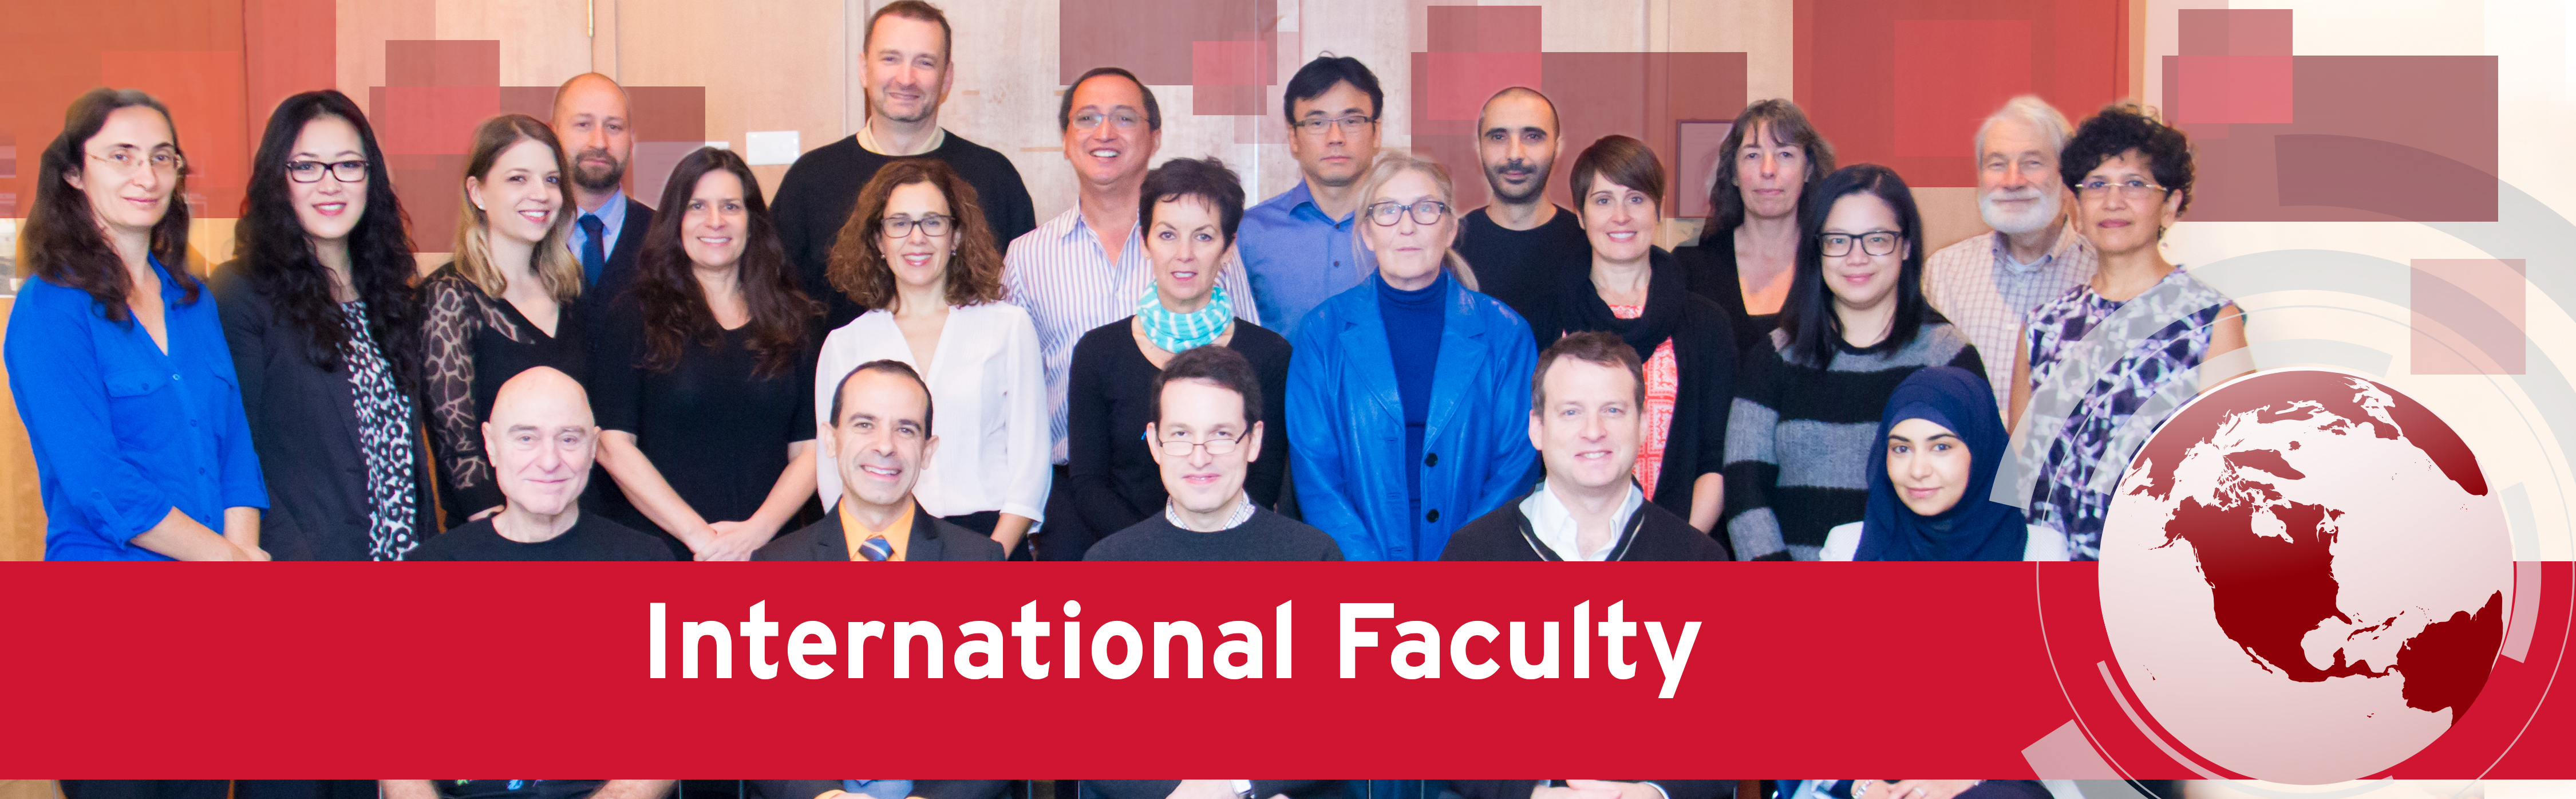 International Faculty